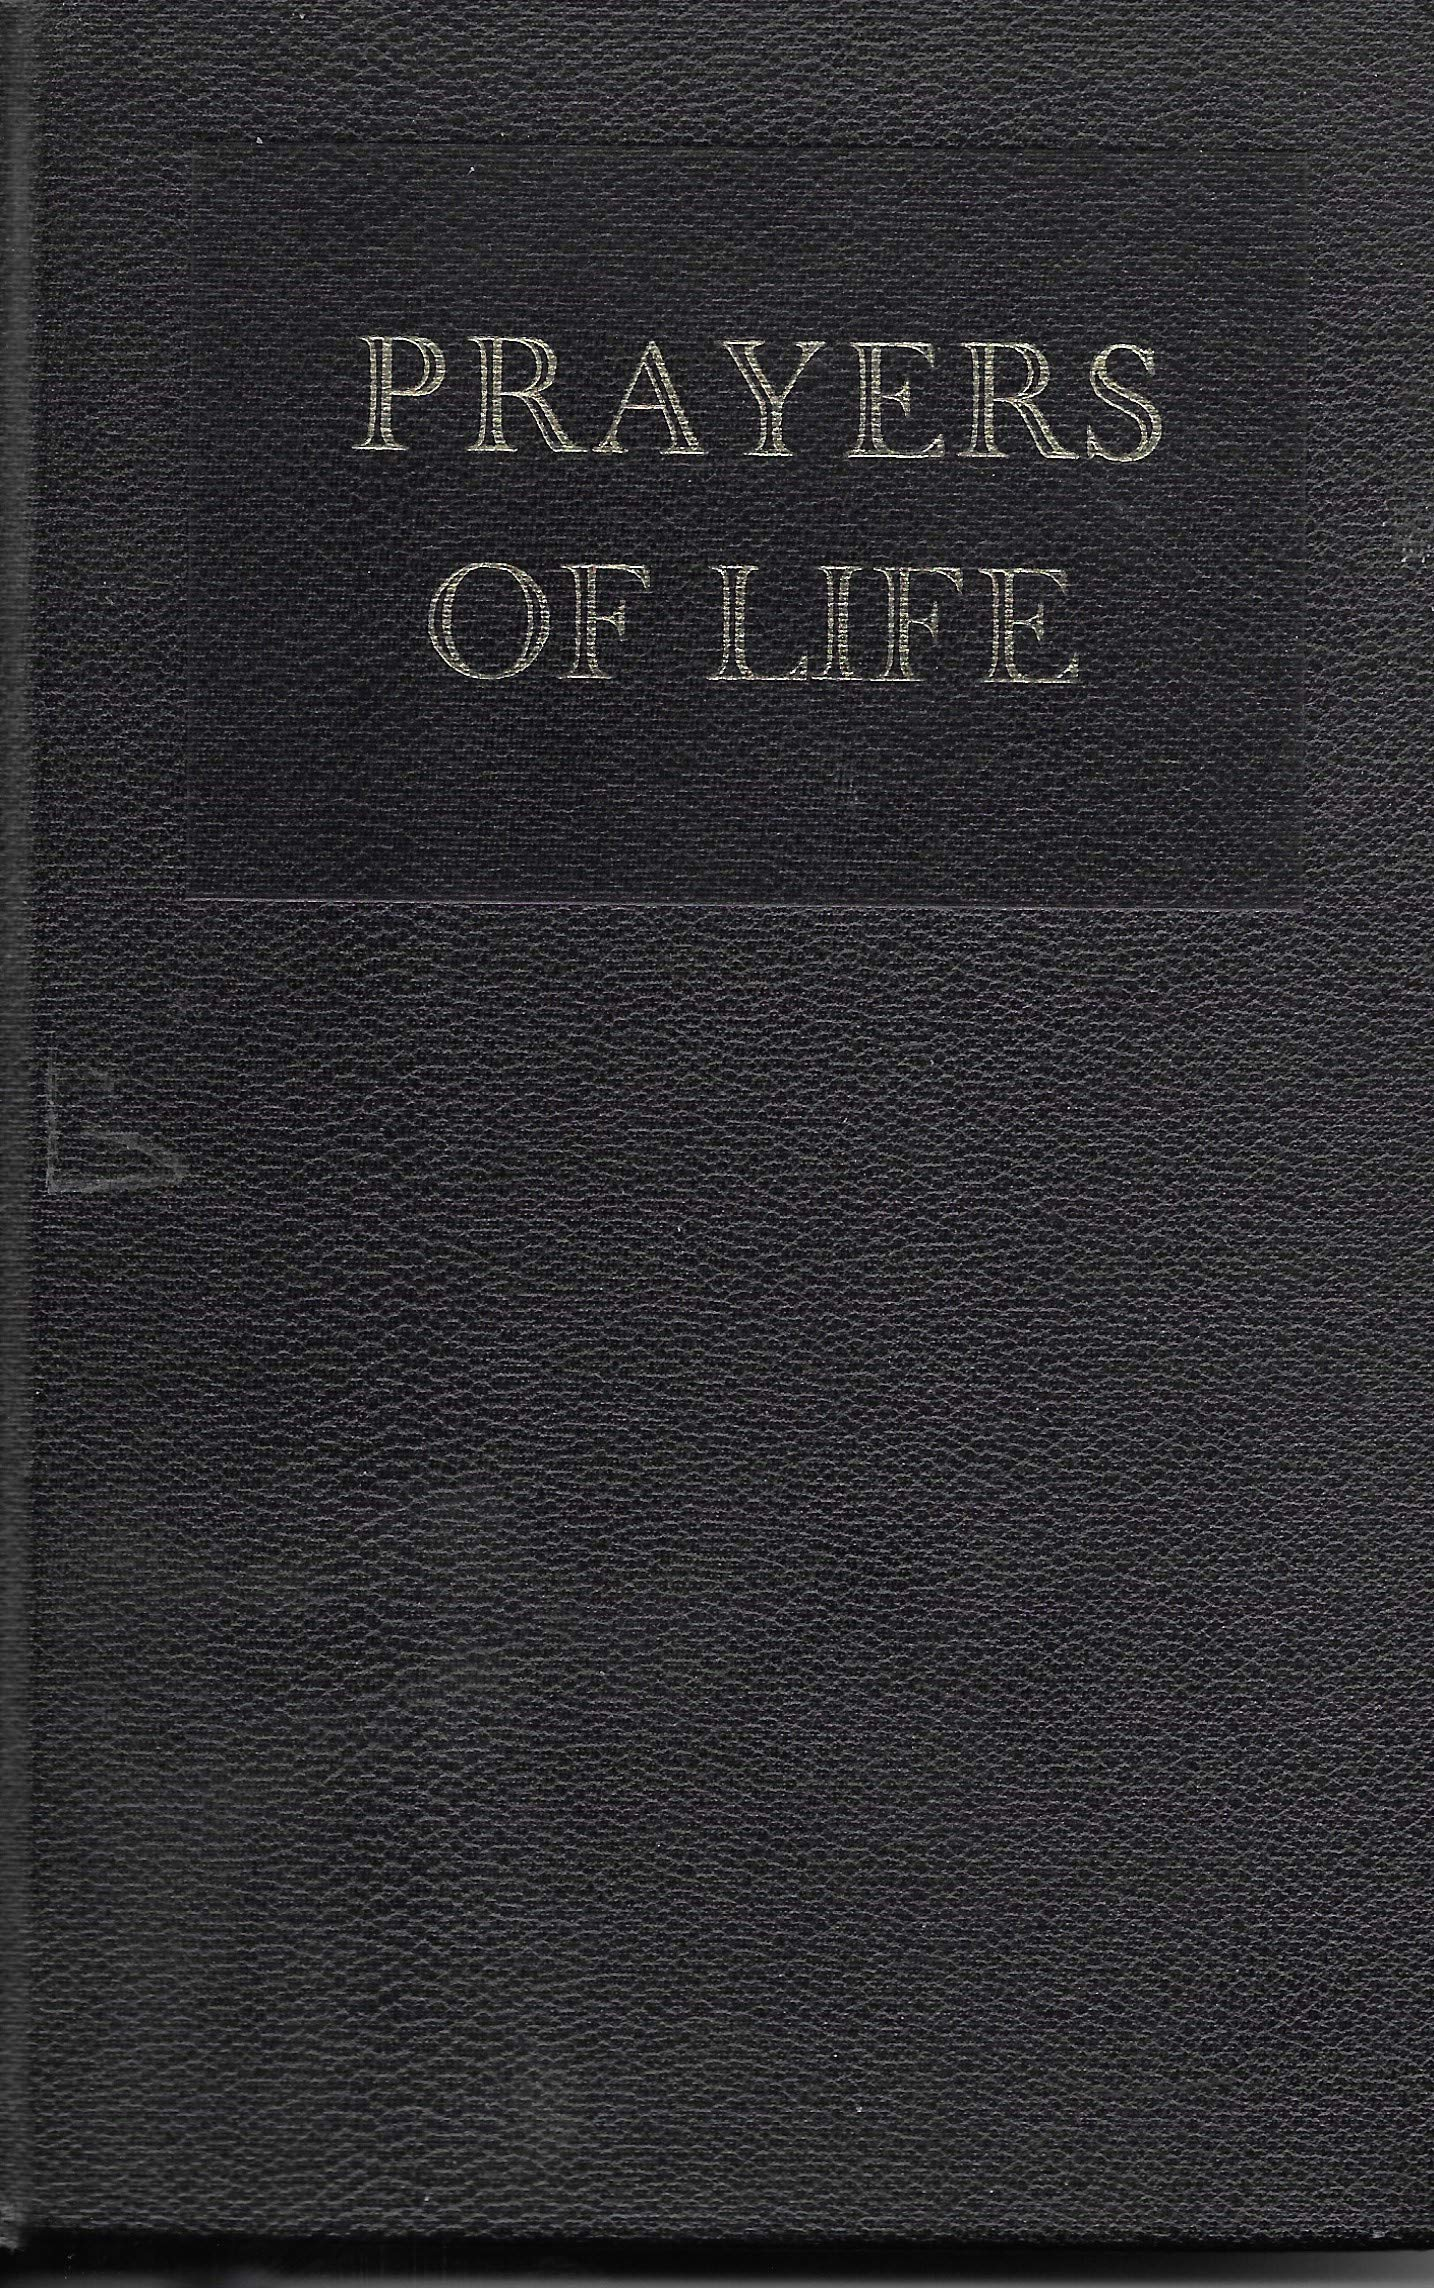 Amazon In Buy Prayers Of Life Logos Books Book Online At Low Prices In India Prayers Of Life Logos Books Reviews Ratings